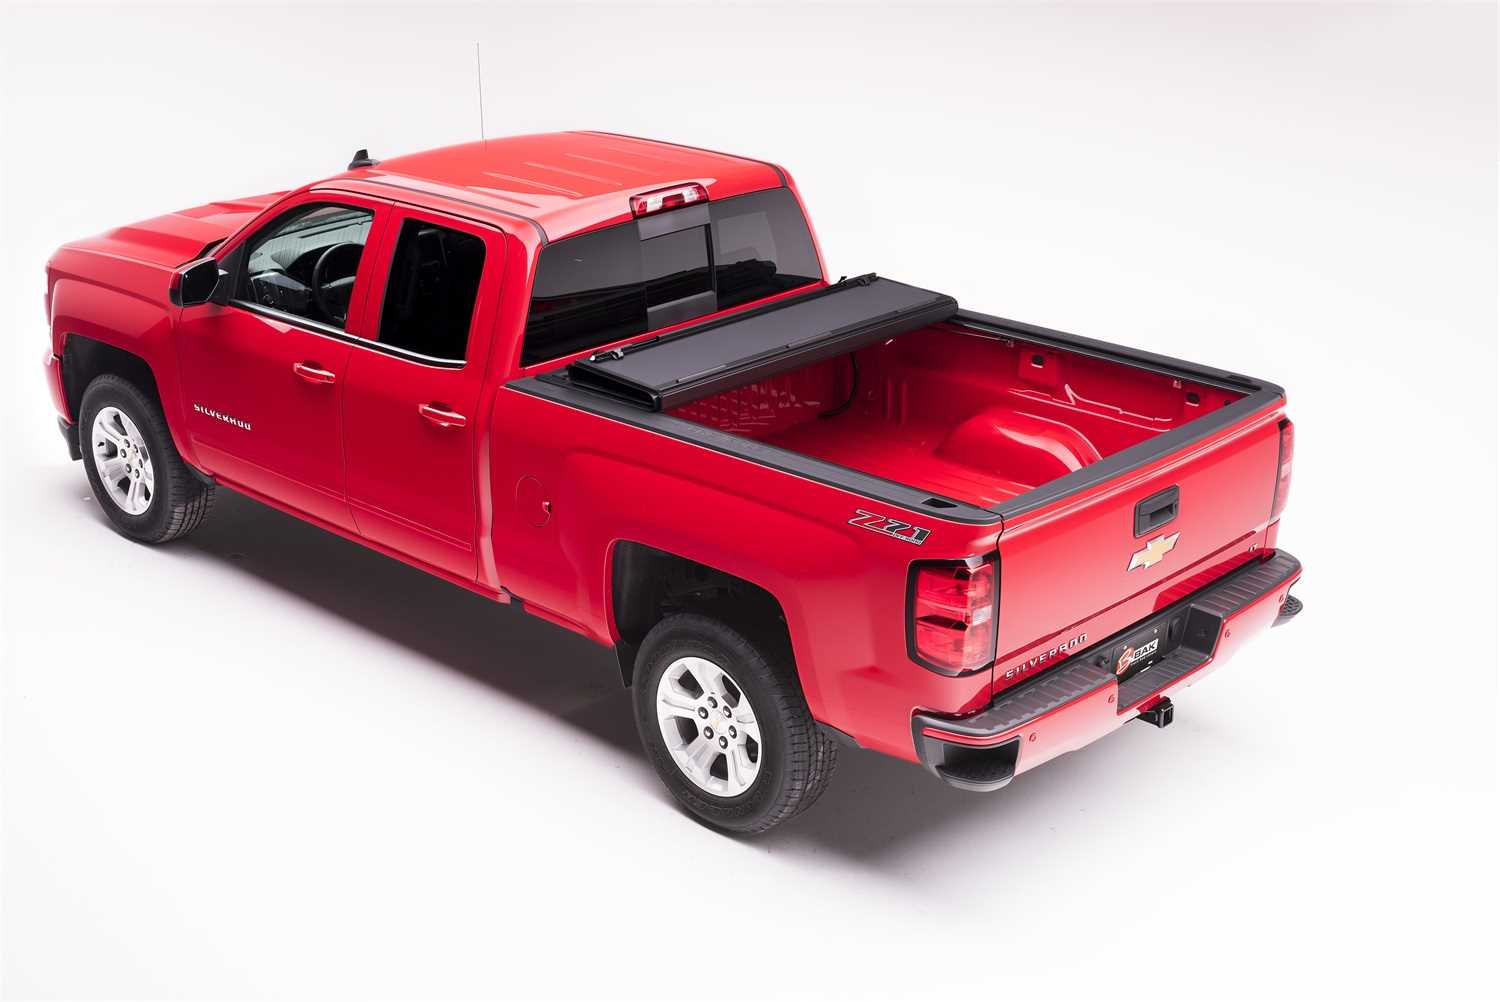 448126 Bak Industries BAKFlip MX4 Hard Folding Truck Bed Cover